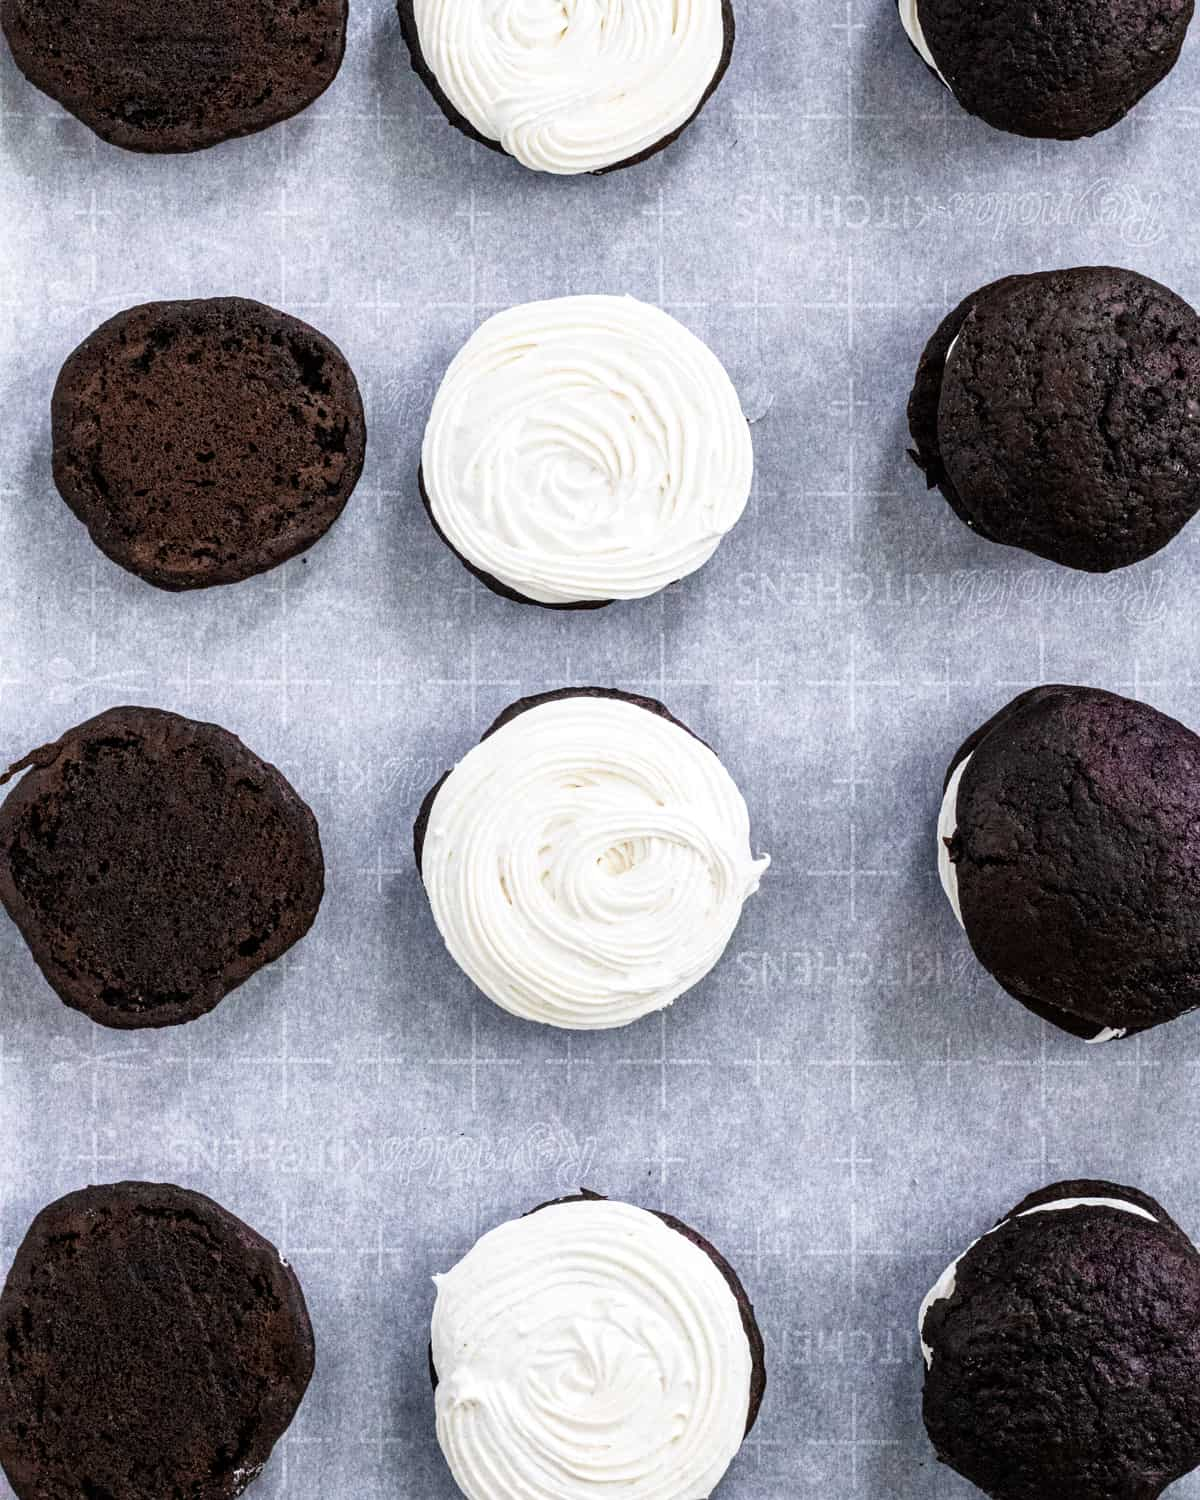 Rows of Maine Whoopie Pies: one row of tops, one row with filling, one row whole.